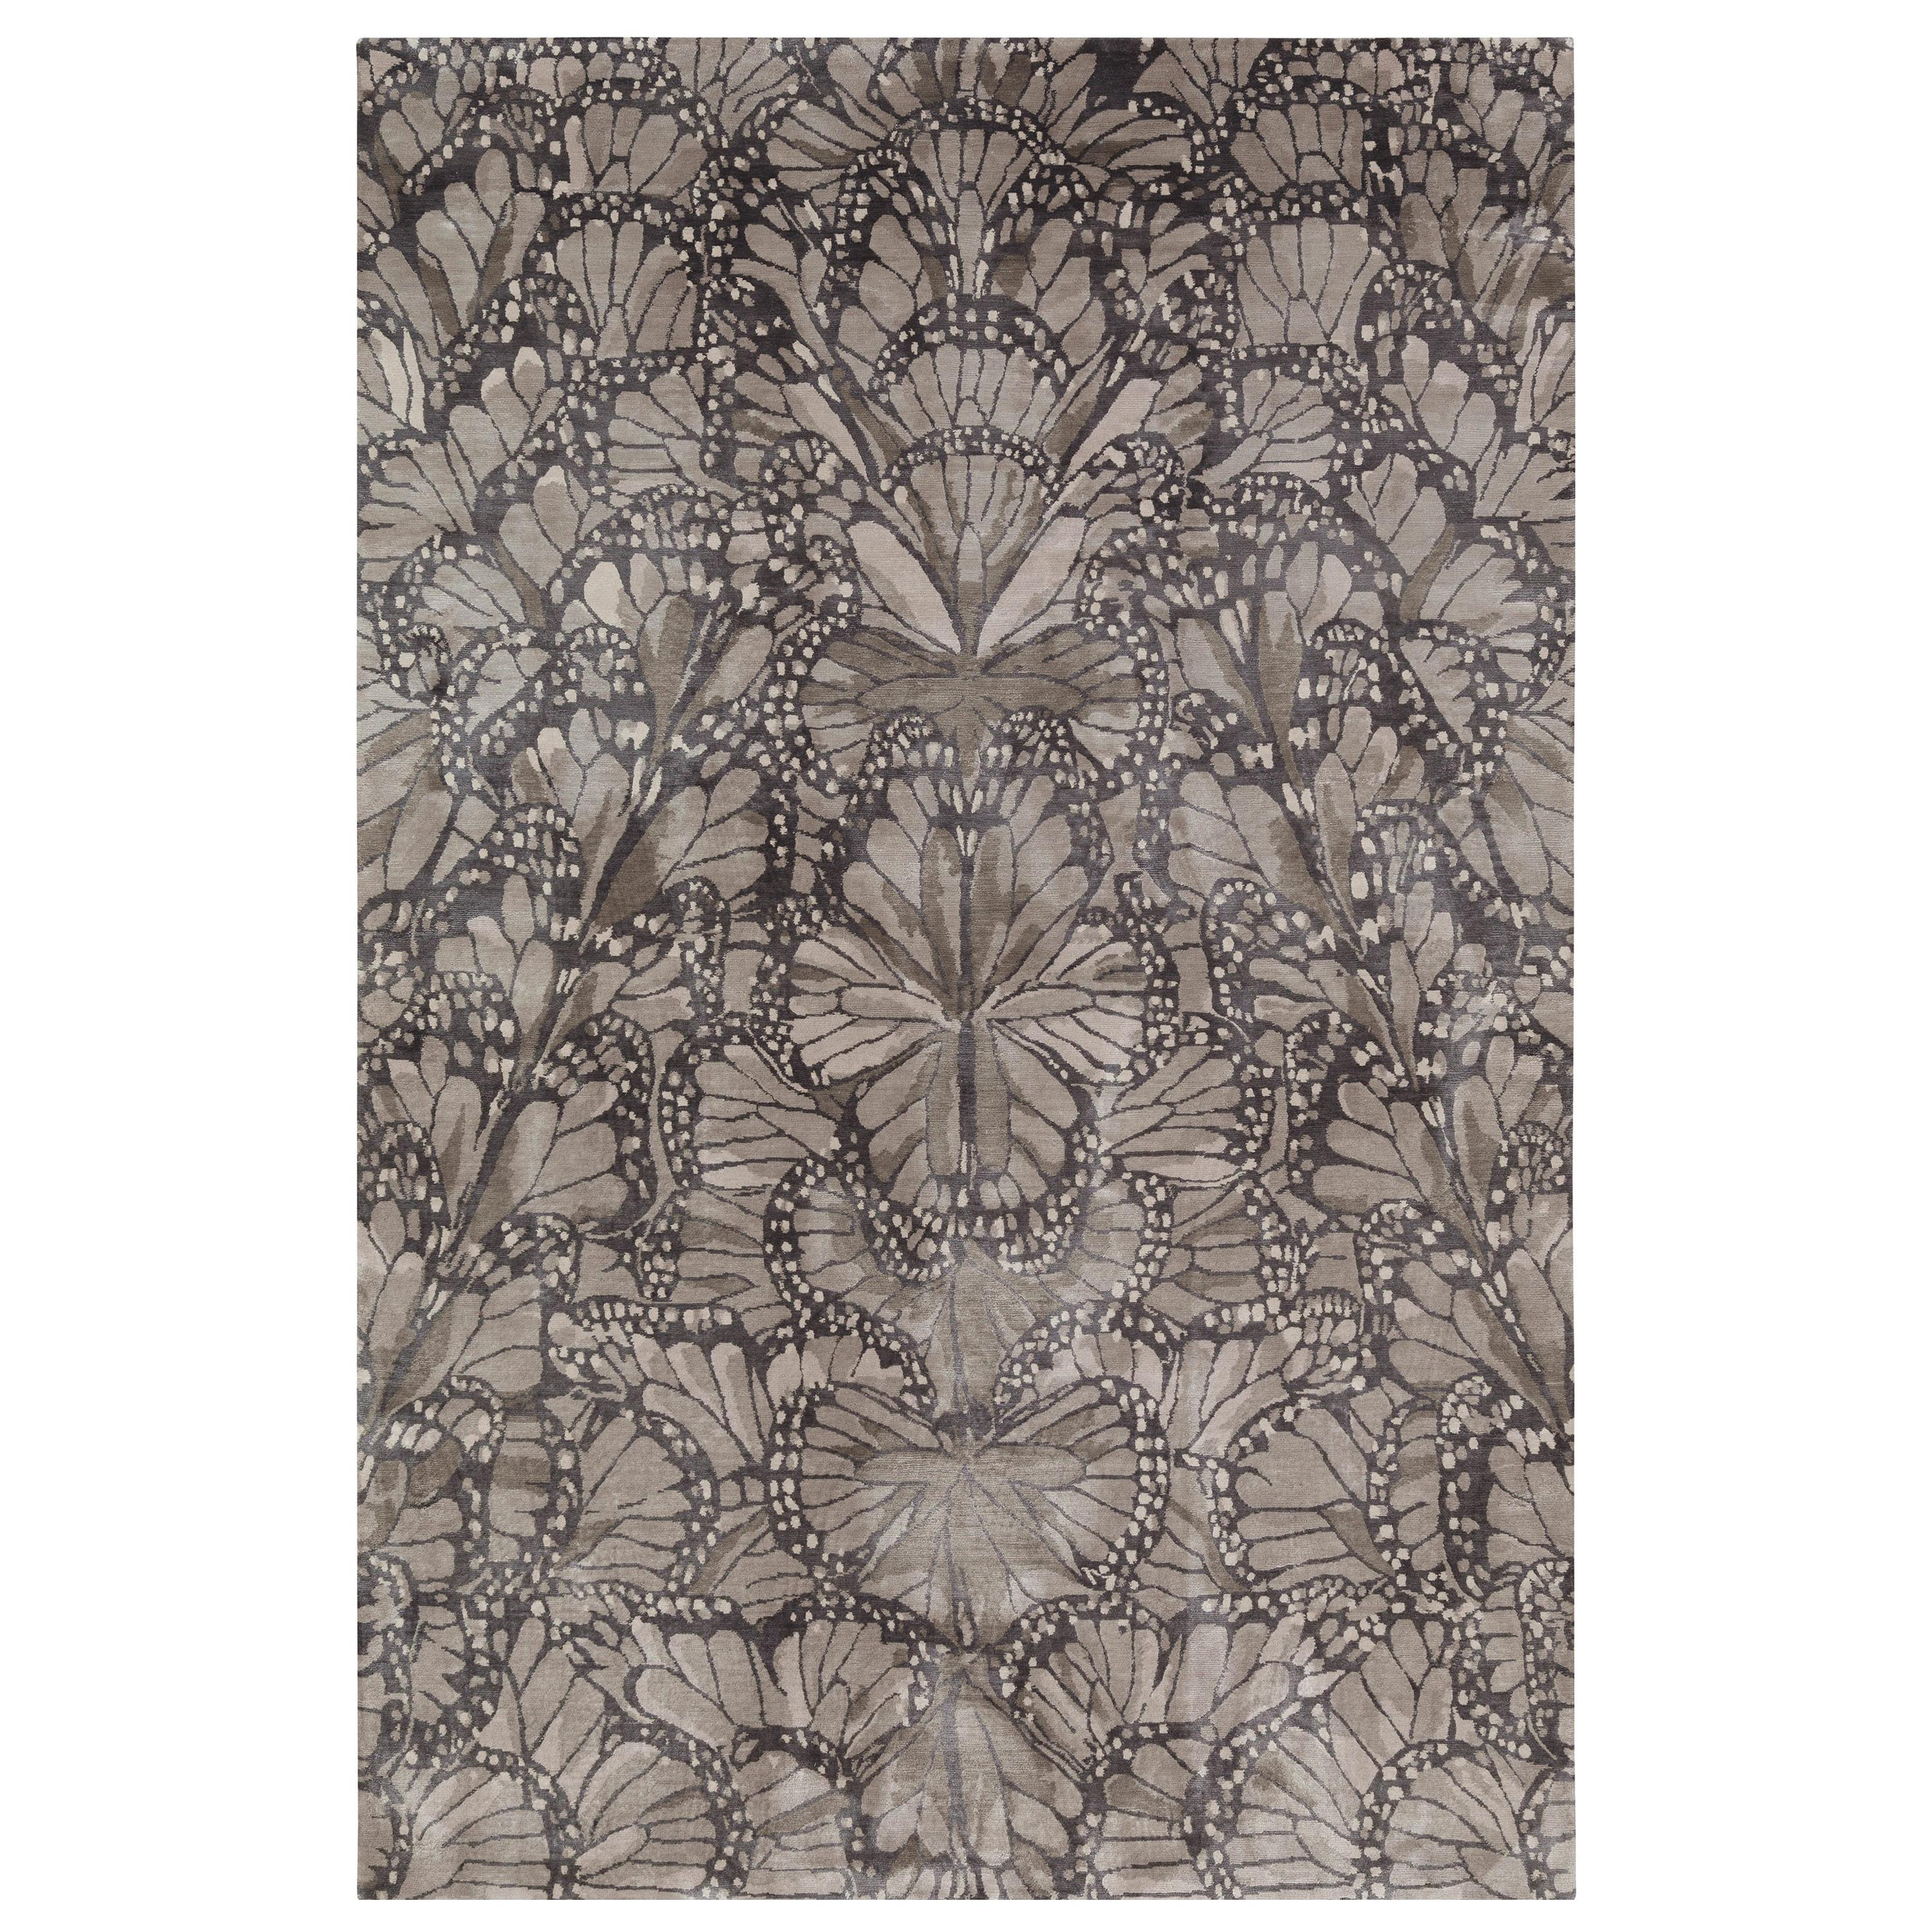 Monarch Smoke Hand-Knotted 10x8 Rug in Silk by Alexander McQueen